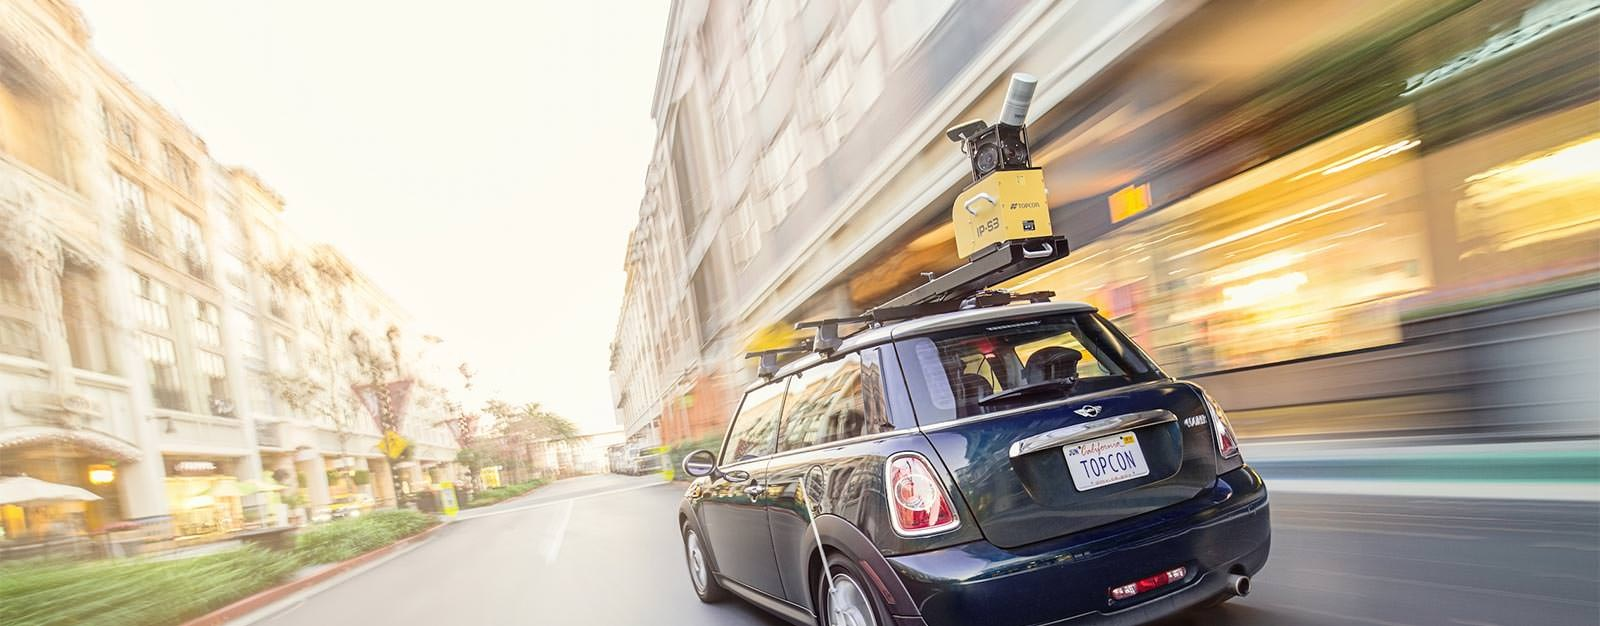 Topcon releases newest vehicle mounted 3D mobile mapping system